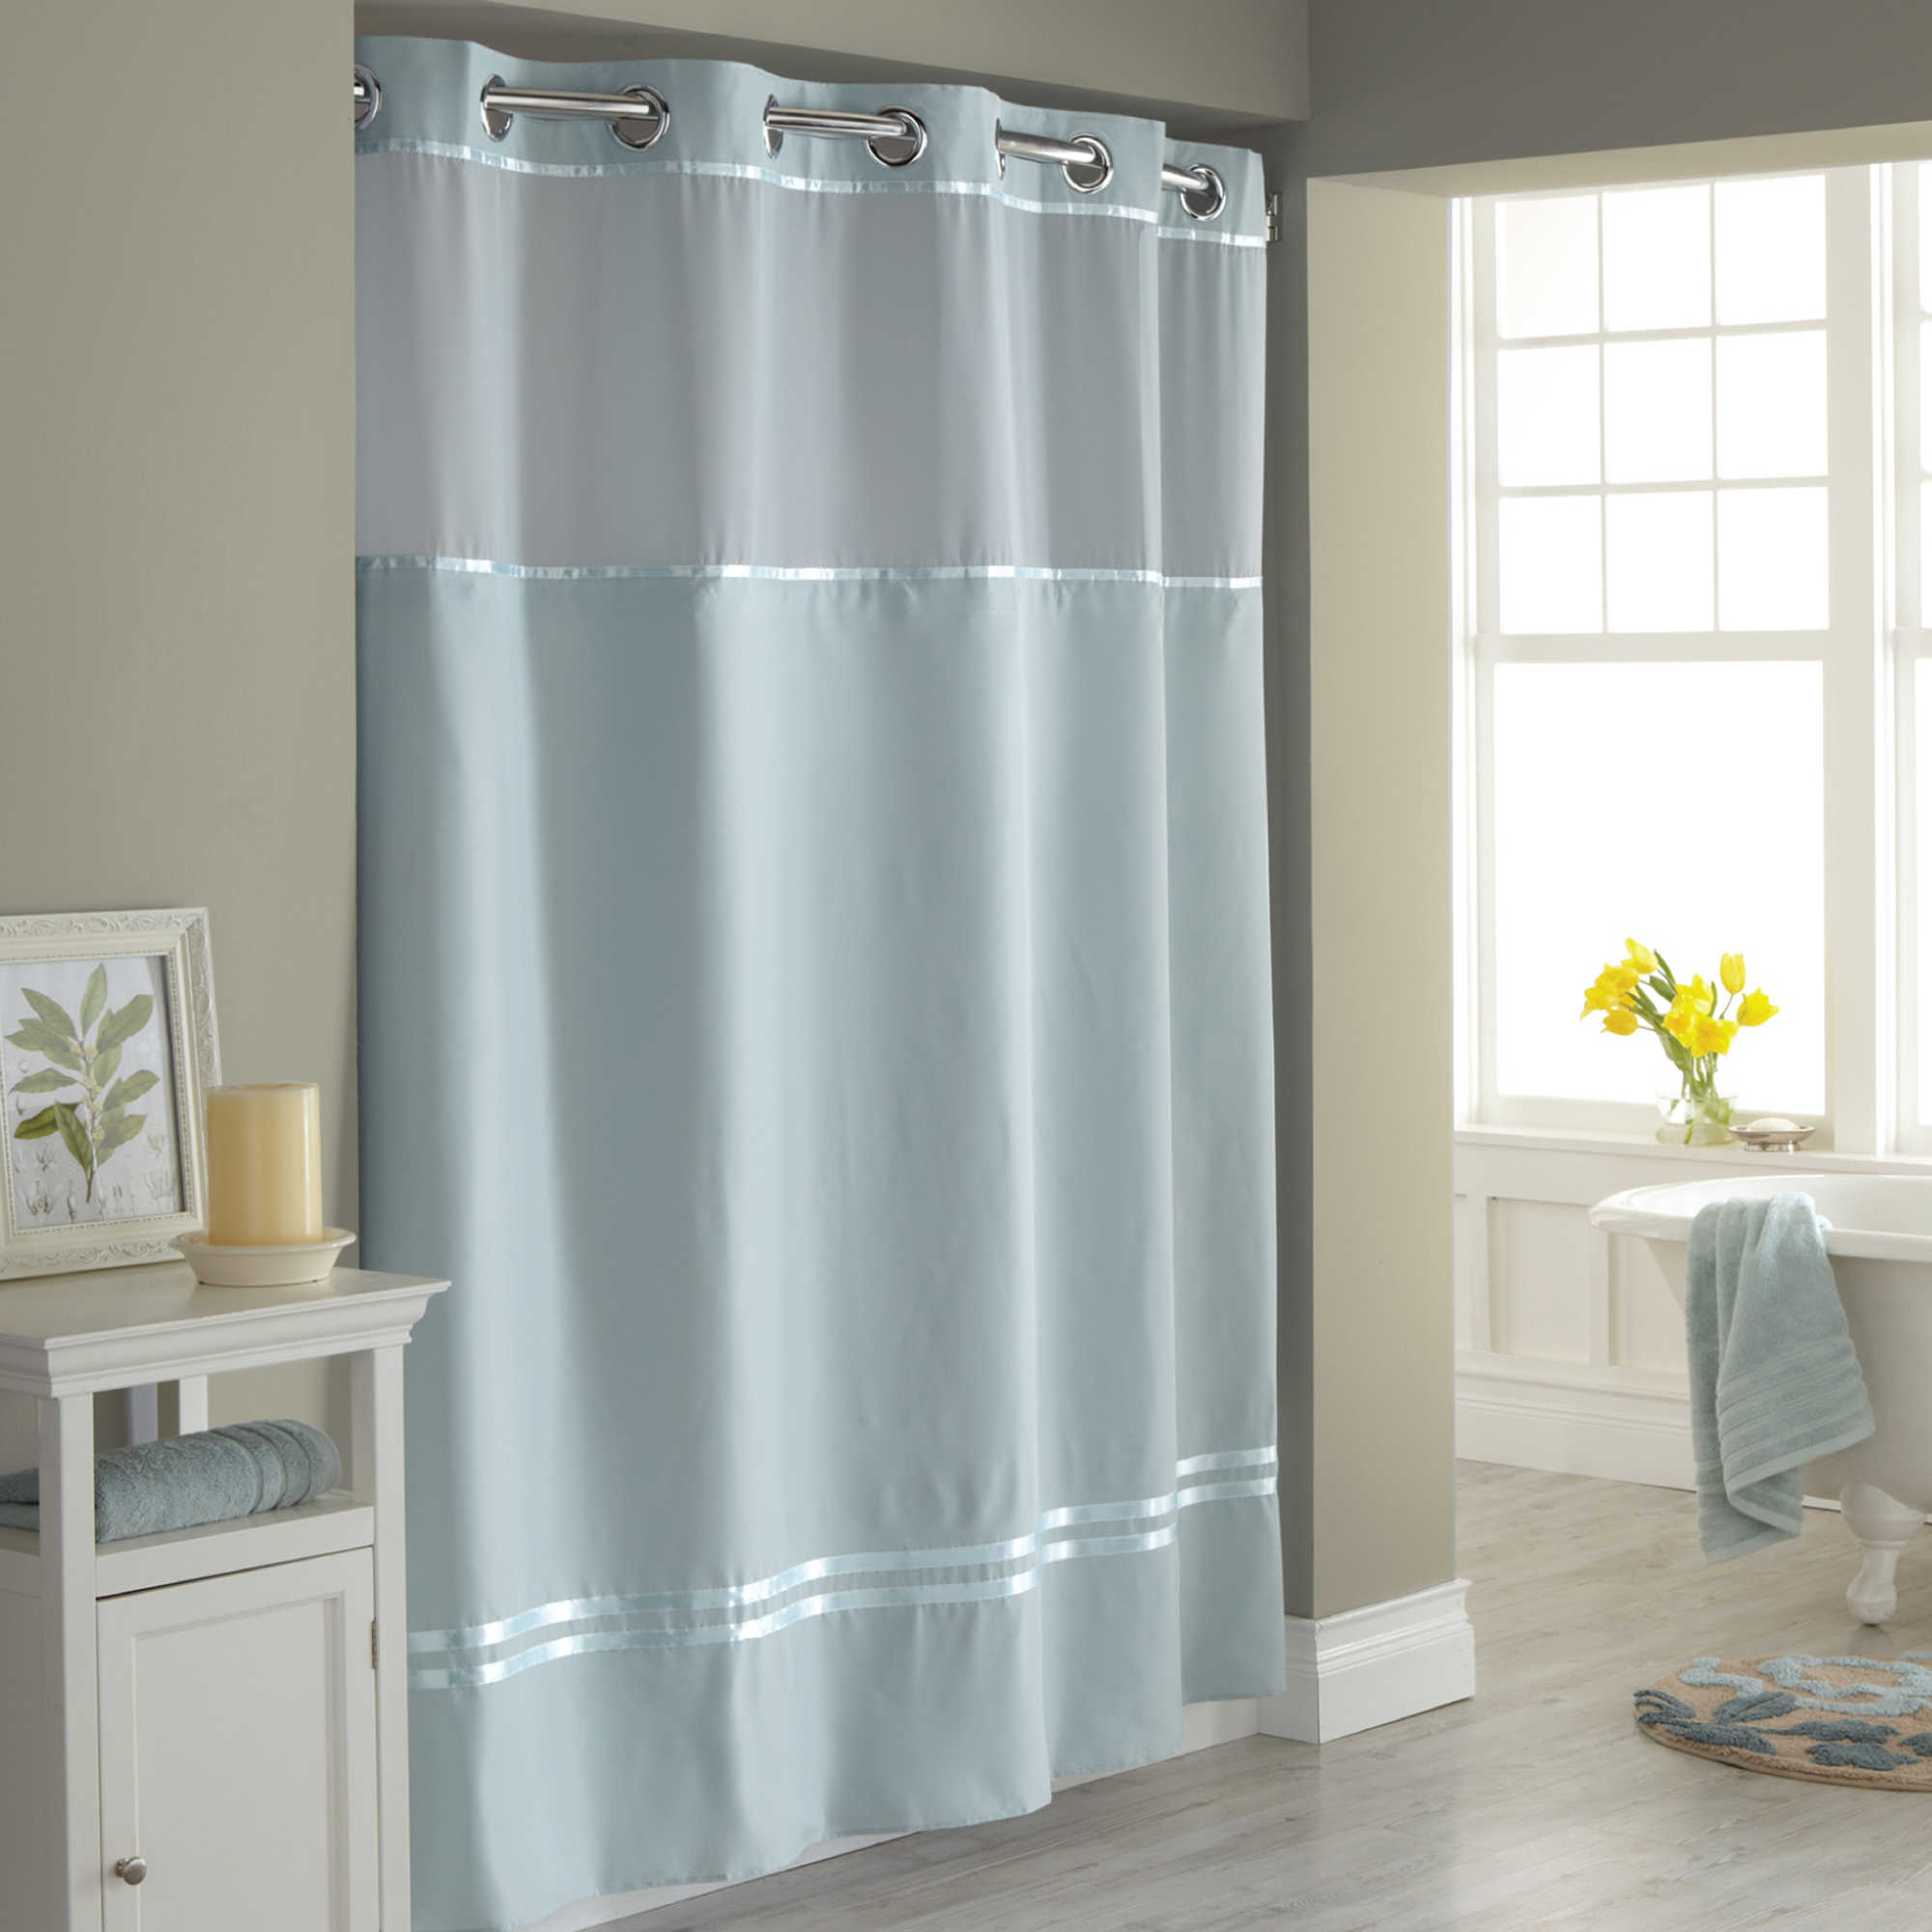 hotel style shower curtain liner